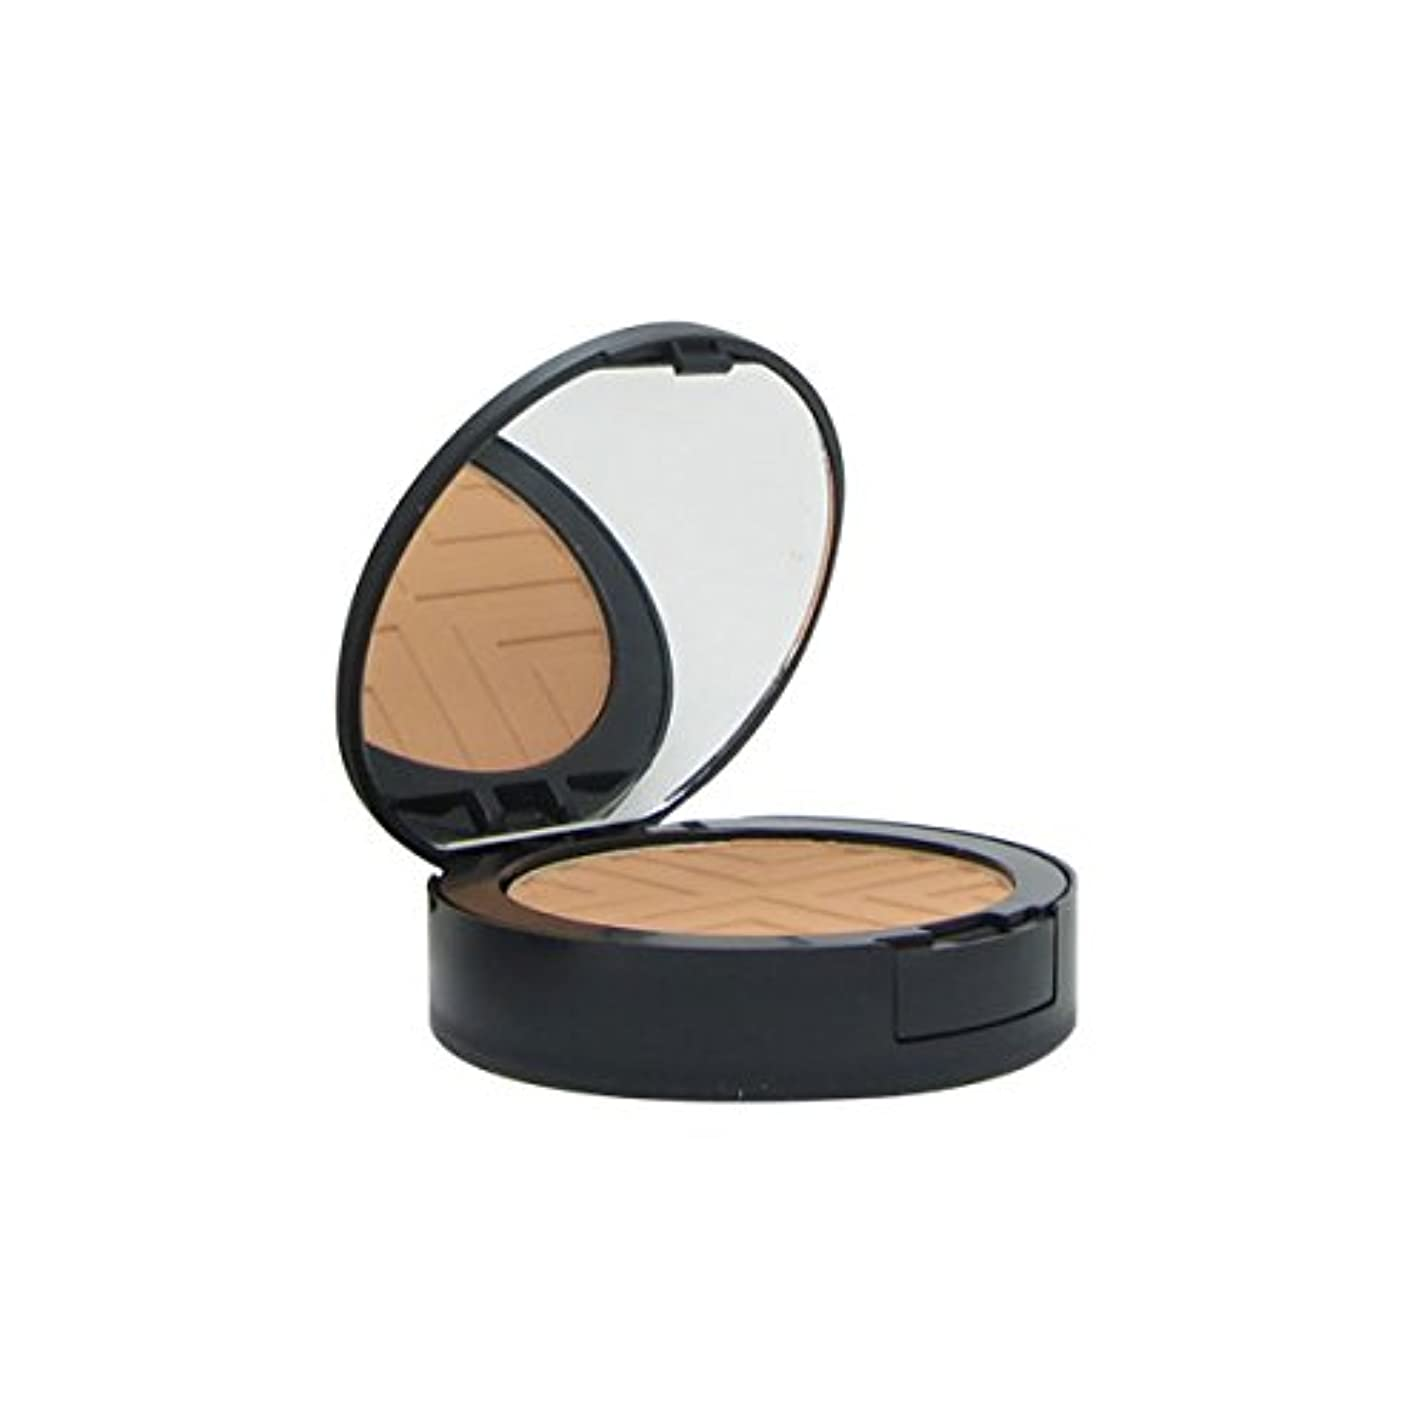 突き出すコンドーム例Vichy Dermablend Covermatte Compact Powder Foundation 55 Bronze 9,5g [並行輸入品]